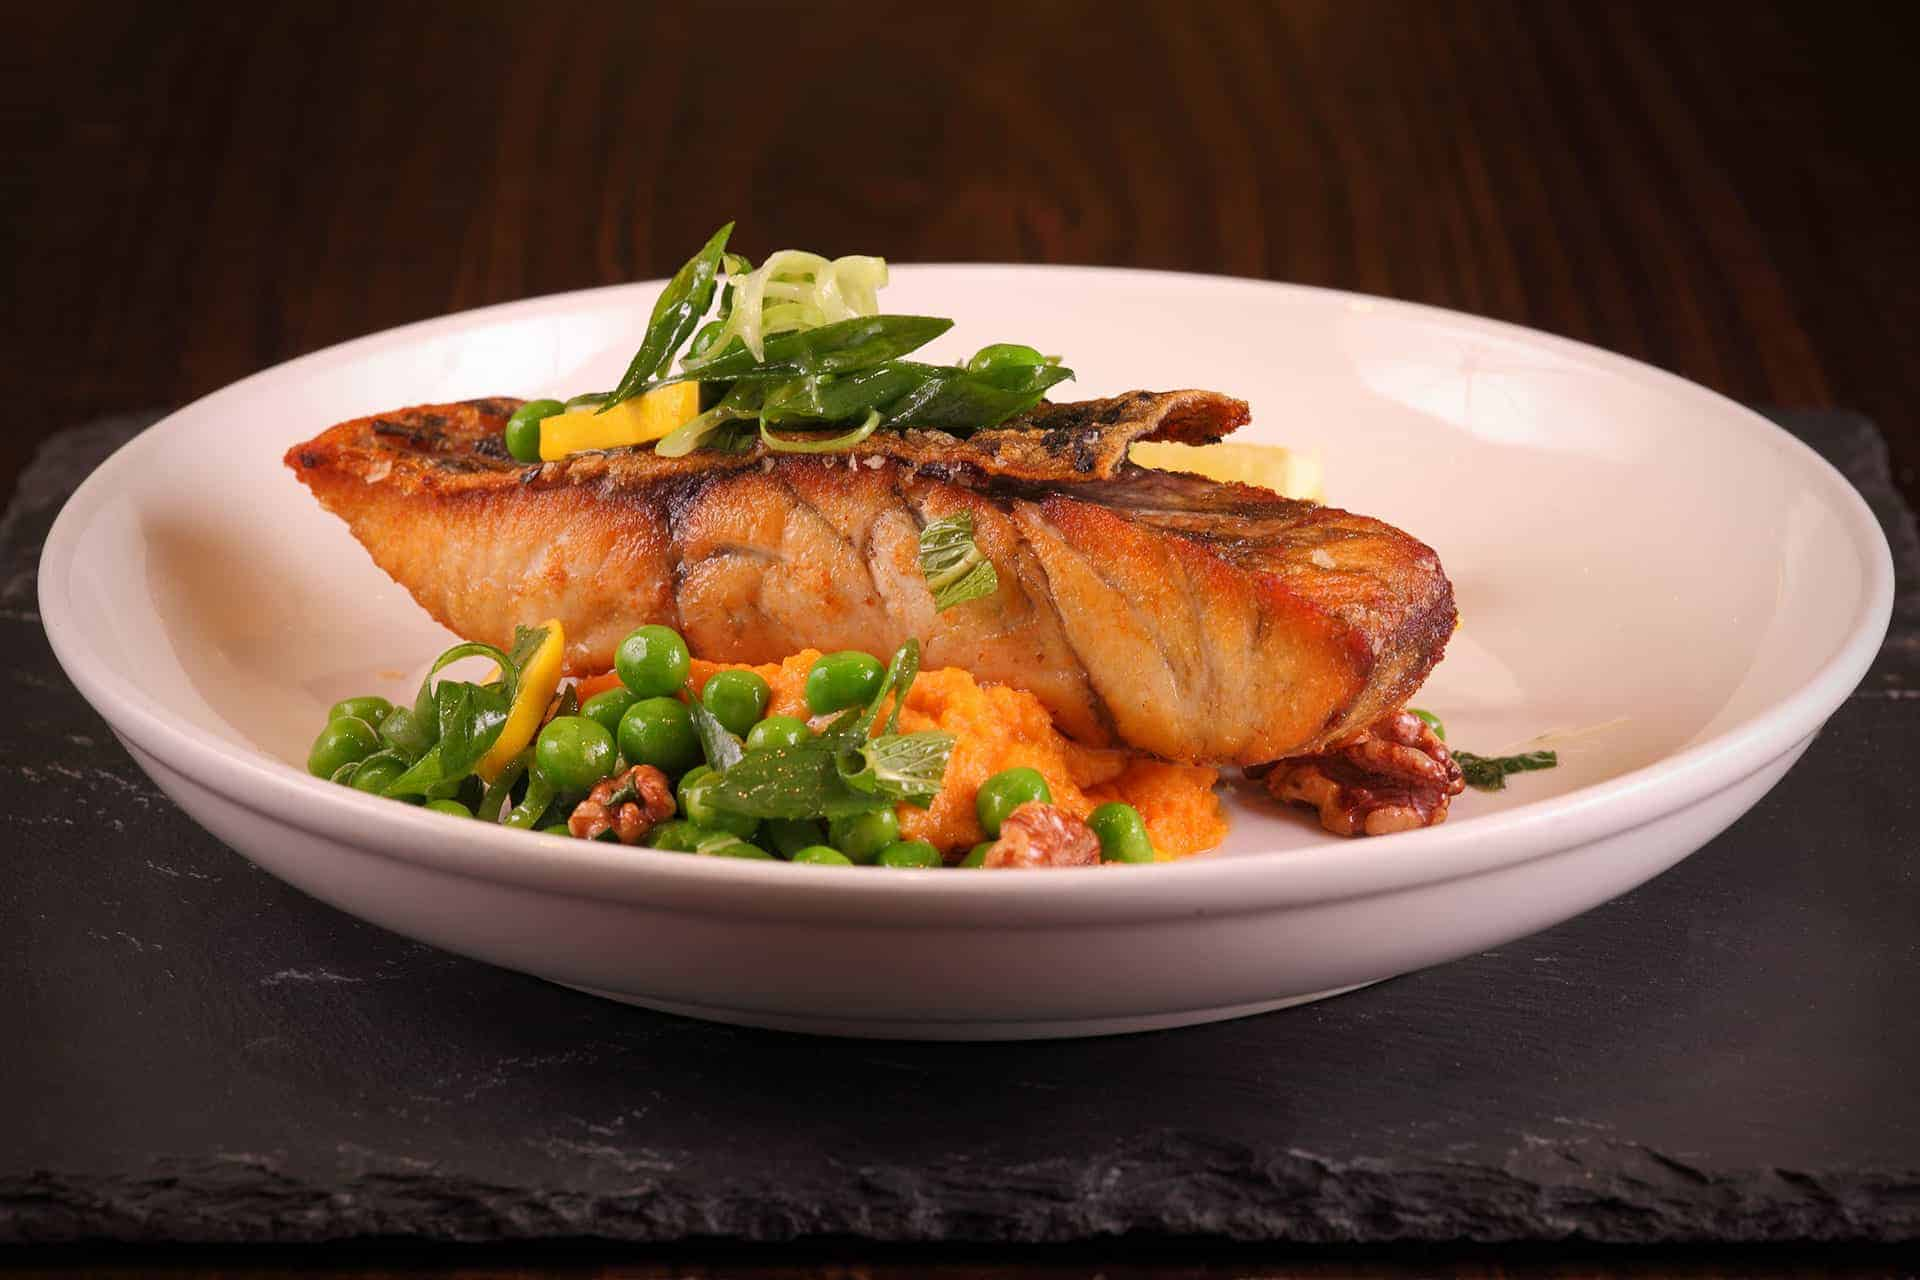 Salmon Steak lunch for dine in, delivery or take away from Bar Cupola Cafe Restaurant Angel Place Sydney